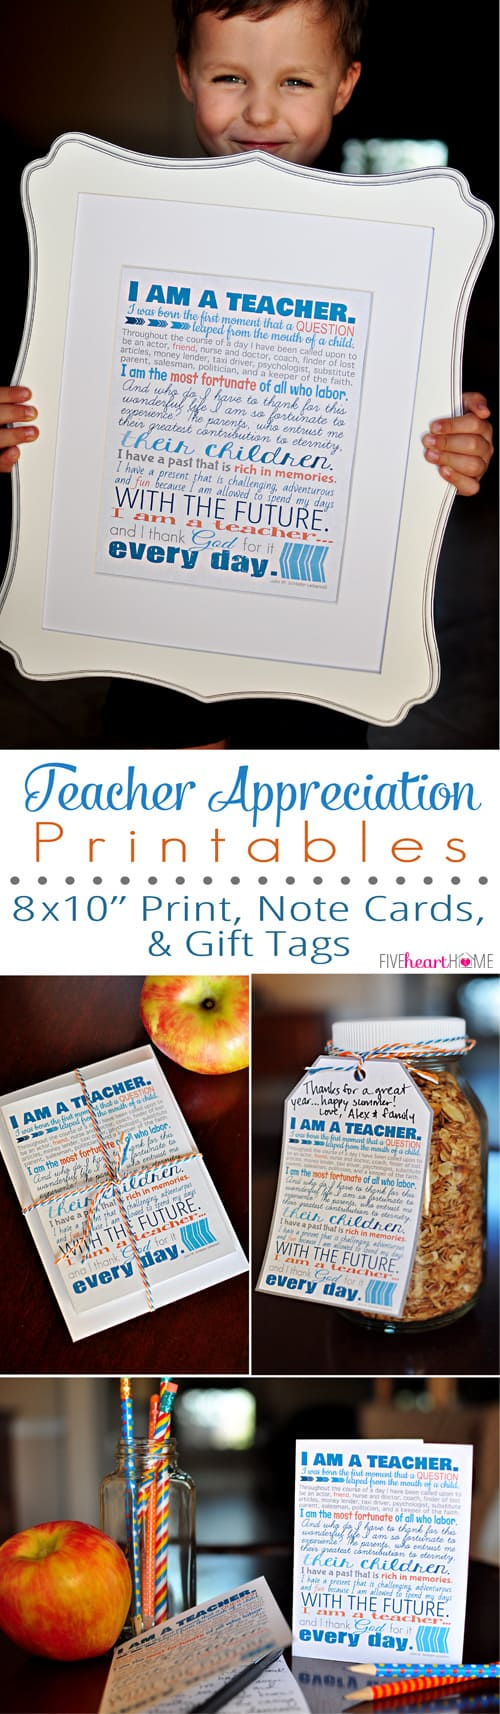 "Teacher Appreciation Free Printables ~ 8x10"" print, note cards, and gift tags"